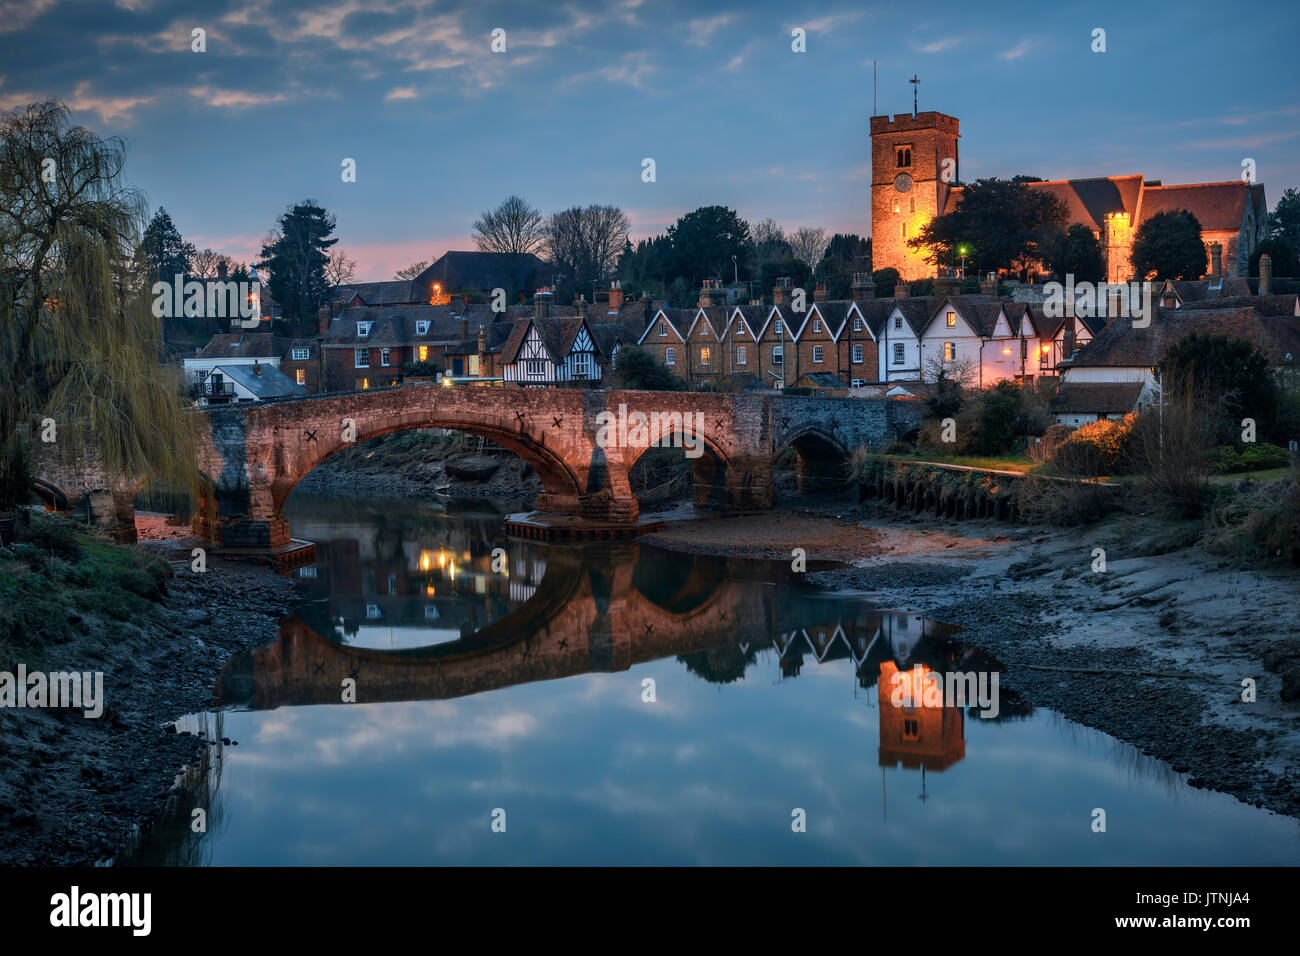 Aylesford, United Kingdom - March 22nd, 2016: Night view to Aylesford village in Kent, England with medieval bridge and church. - Stock Image